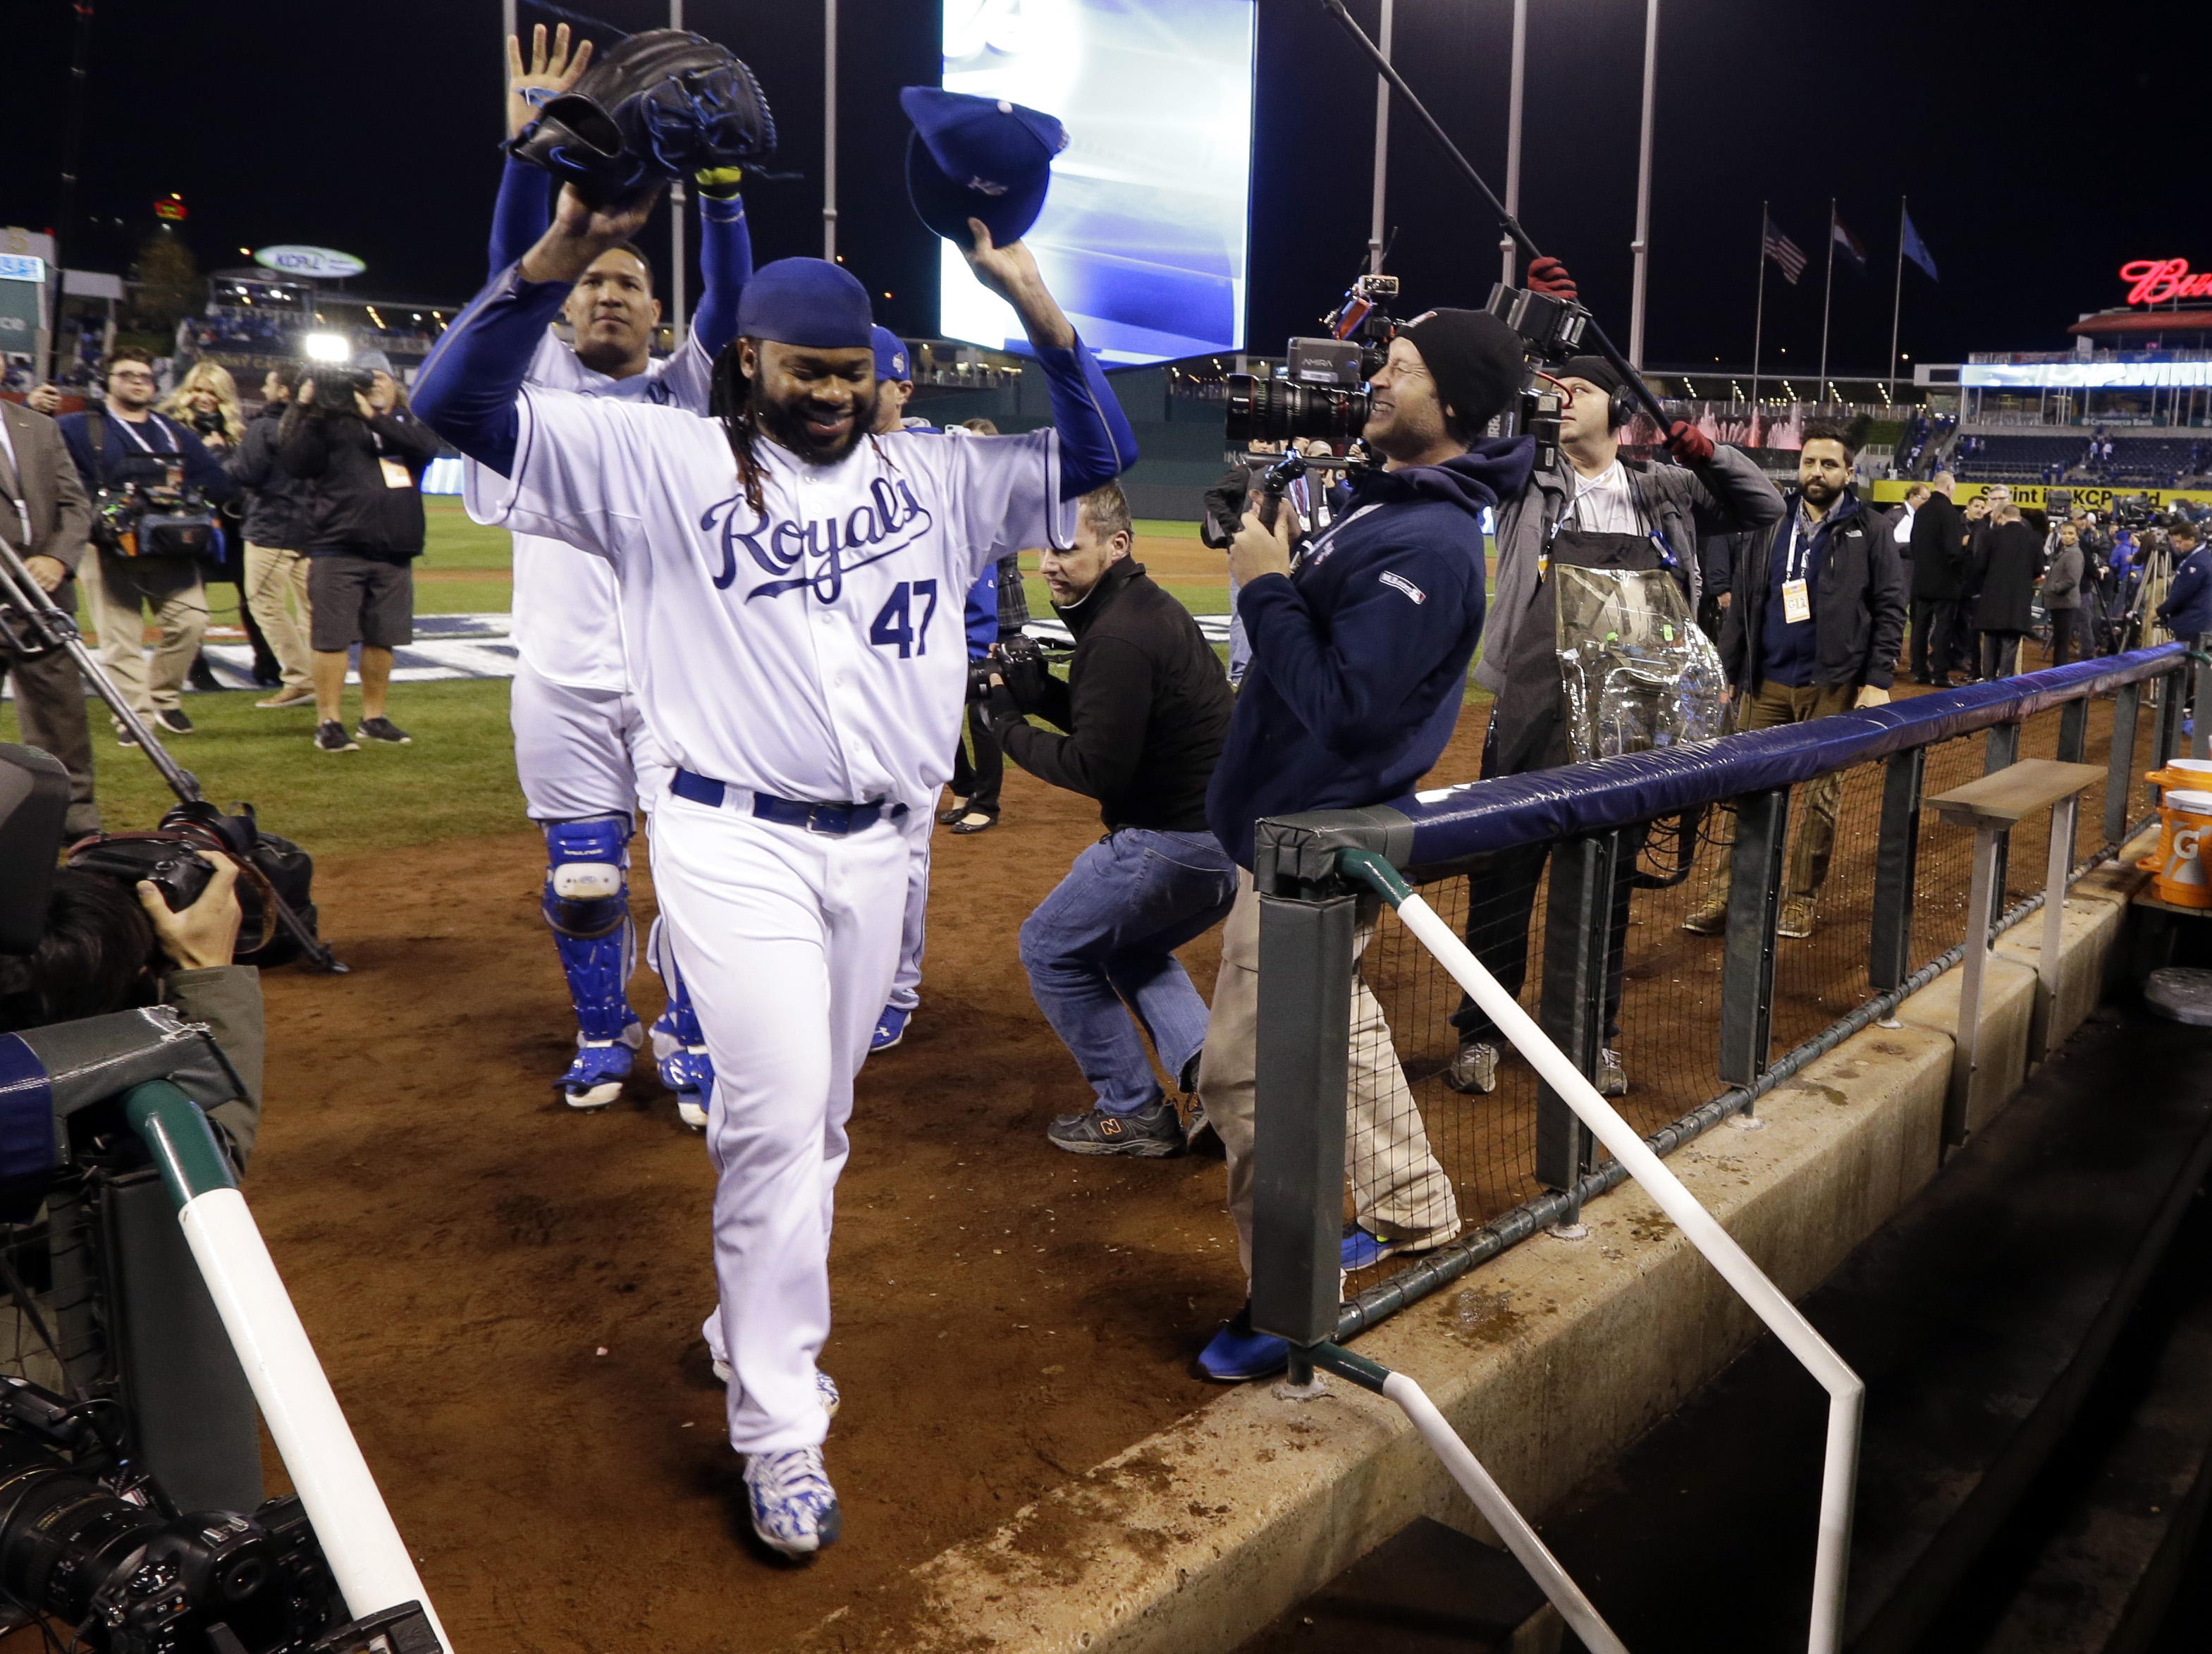 Kansas City Royals pitcher Johnny Cueto celebrates after Game 2 of the Major League Baseball World Series against the New York Mets Wednesday, Oct. 28, 2015, in Kansas City, Mo. The Royals won 7-1 to take a 2-0 lead in the series. (AP Photo/David J. Phill